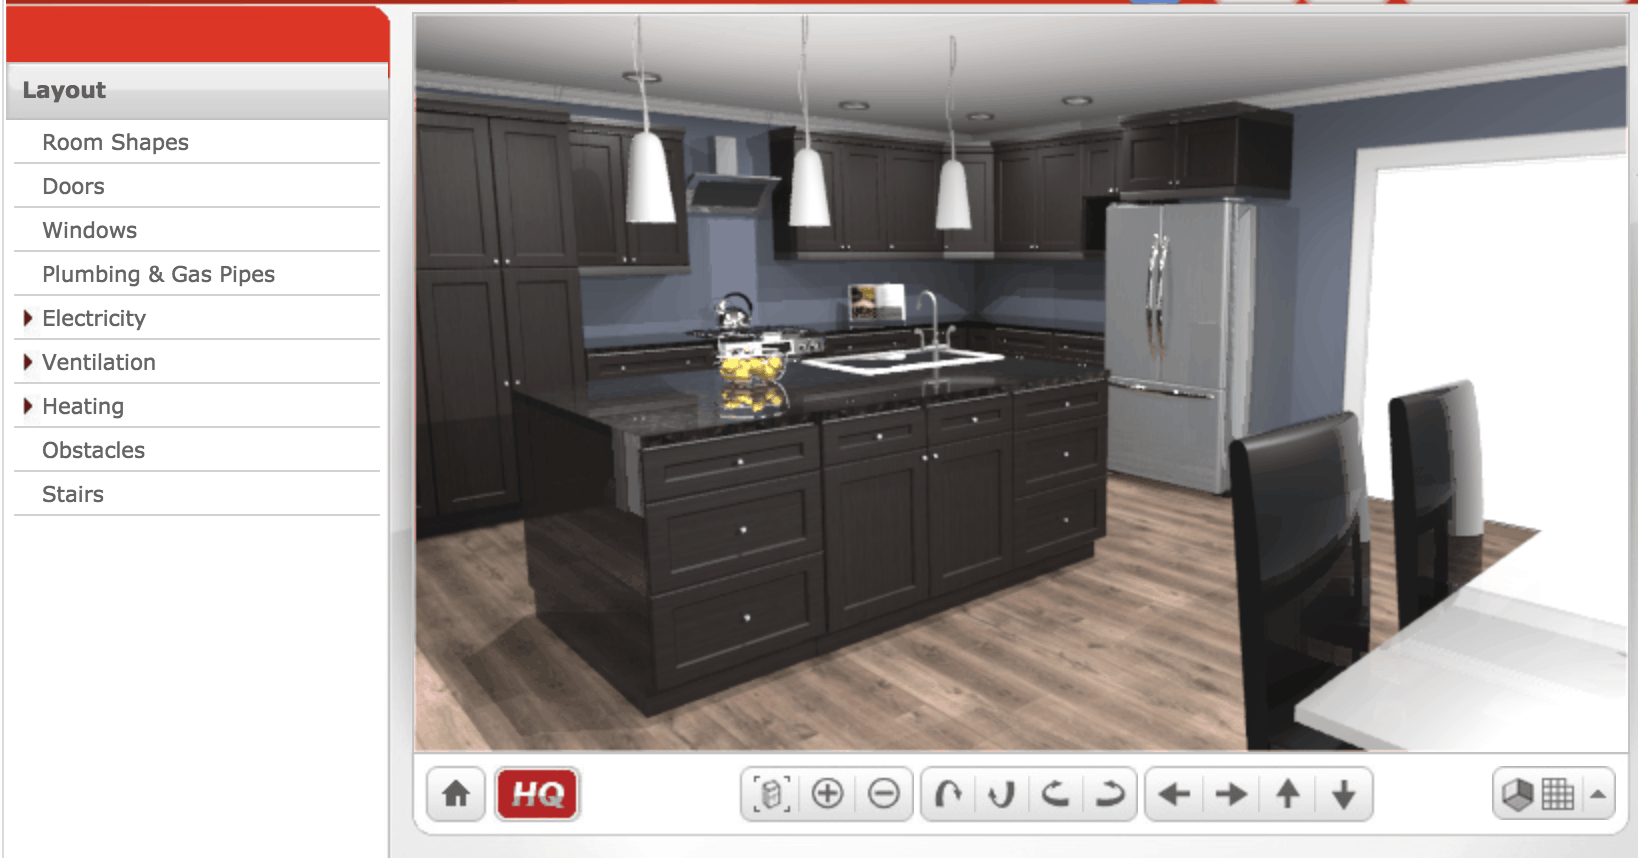 kitchen furniture interior design software  17 Best Online Kitchen Design Software Options in 2018 (Free